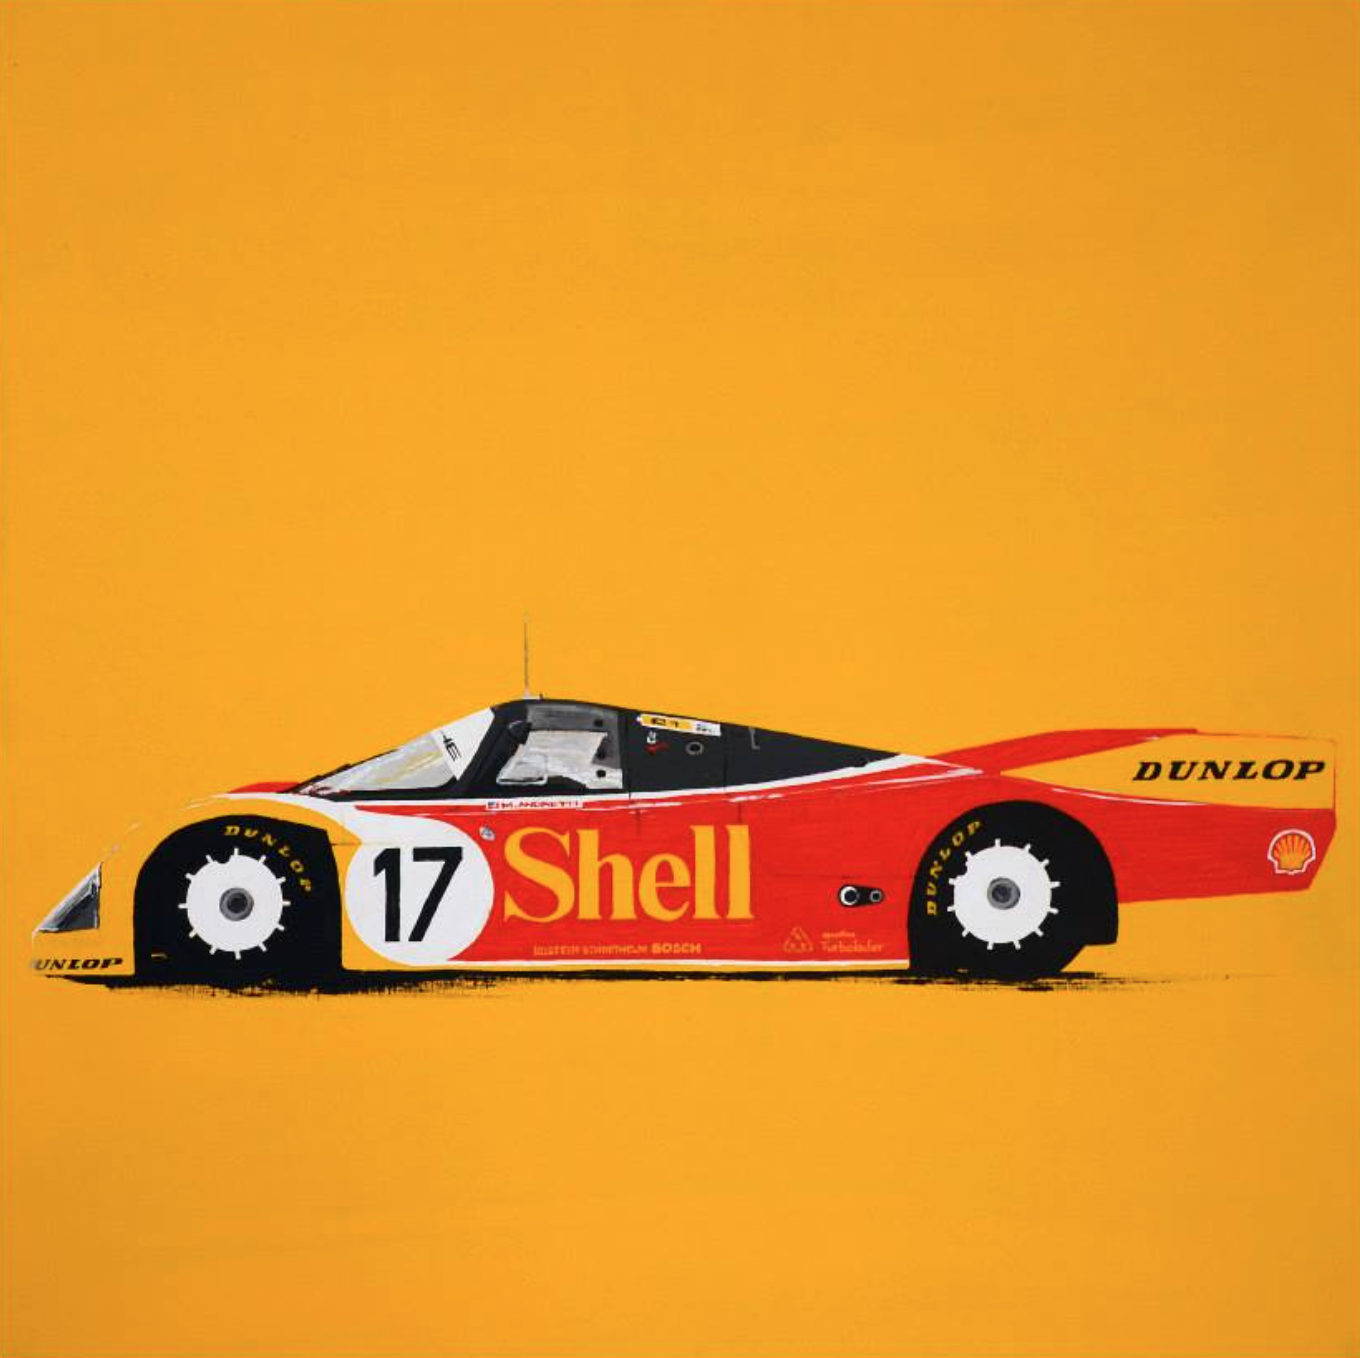 The most iconic race cars in history captured in beautiful paintings